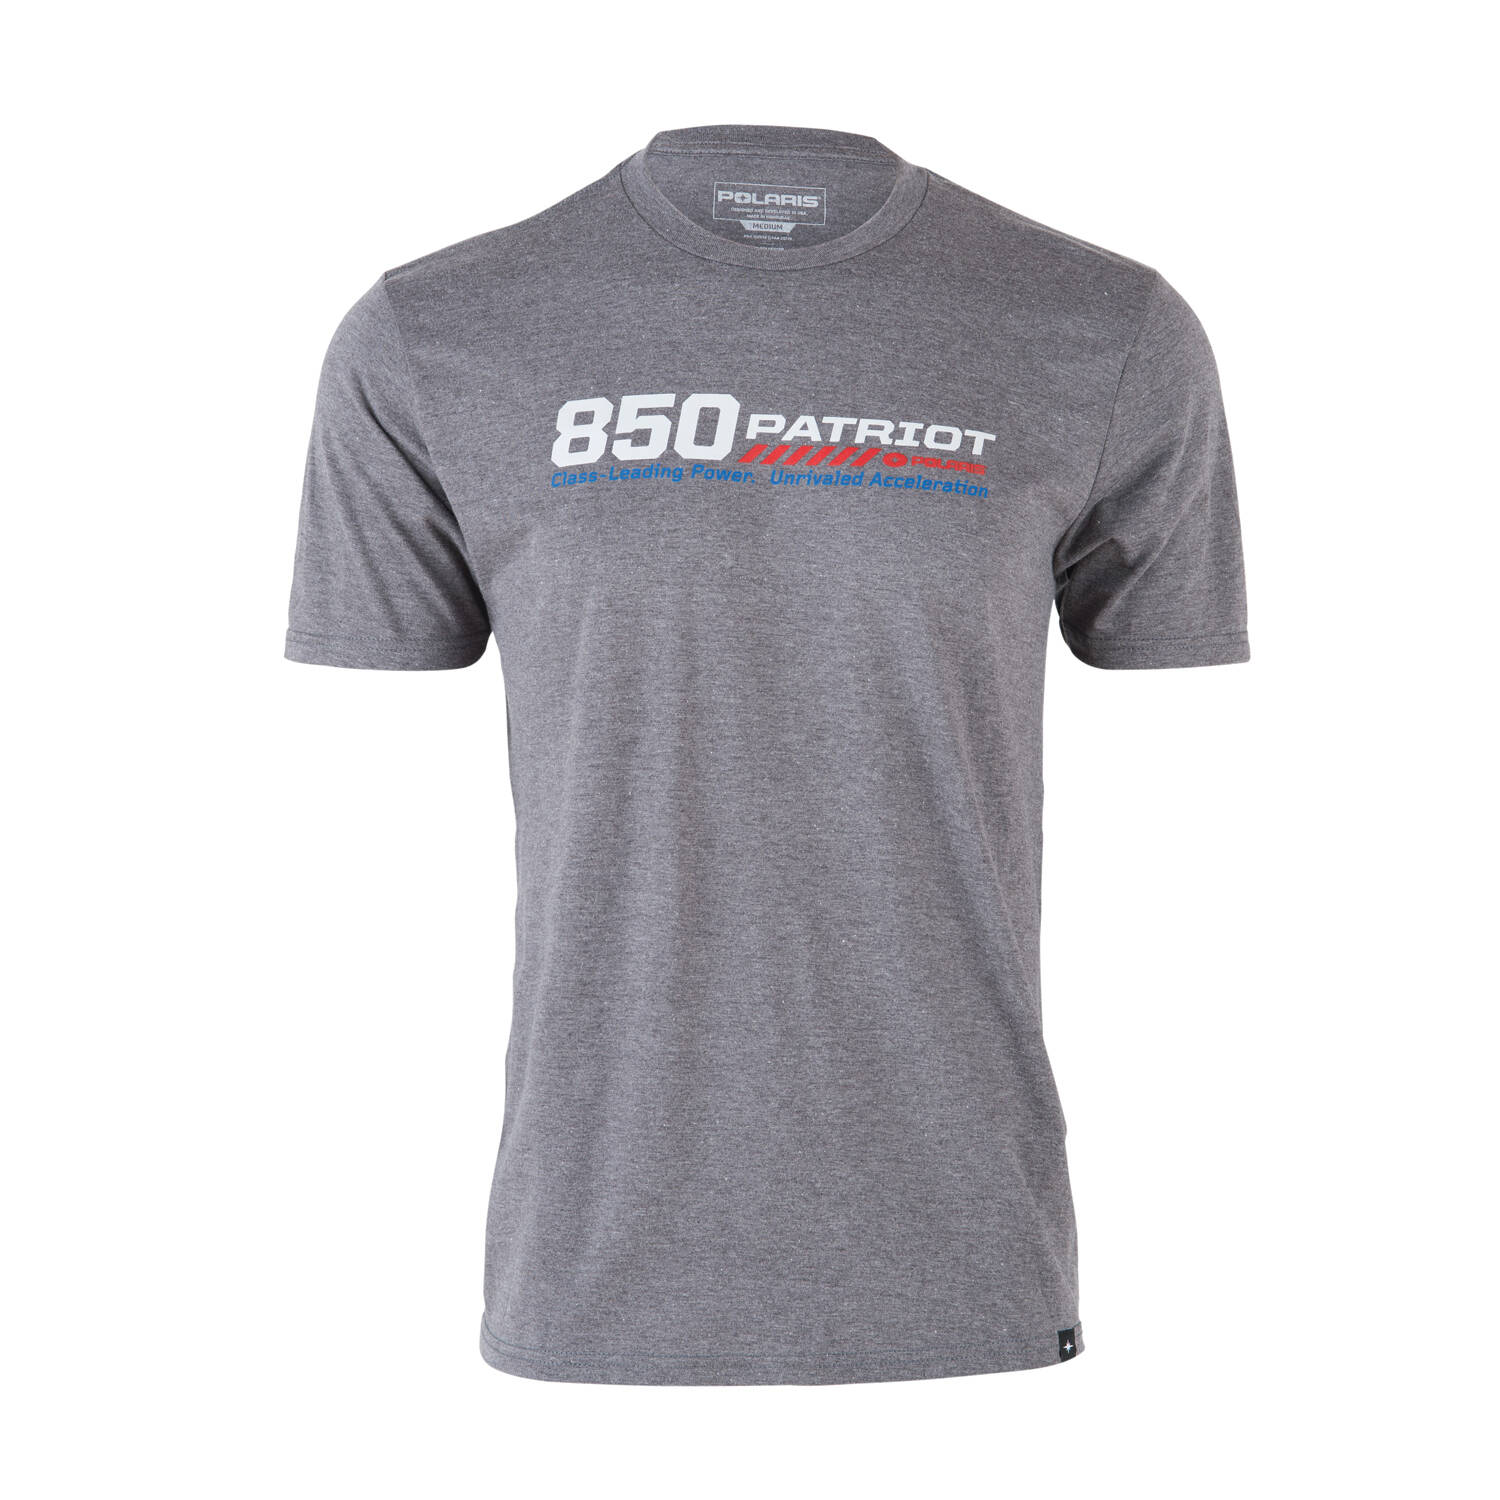 Men's 850 Patriot Graphic T-Shirt with Polaris® Logo, Gray